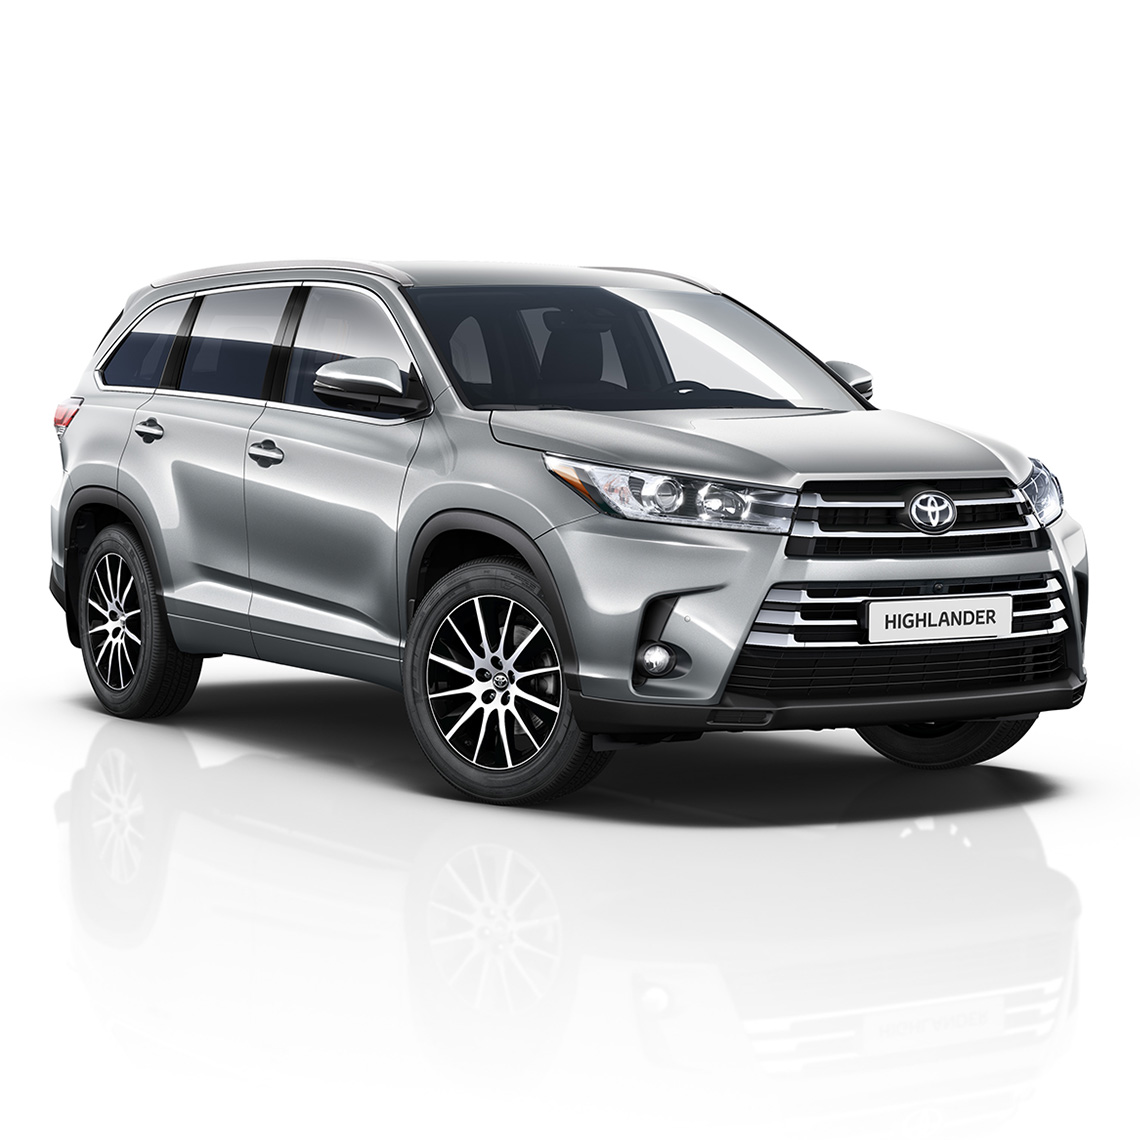 Toyota Highlander Owners Manual: Update contacts from phone